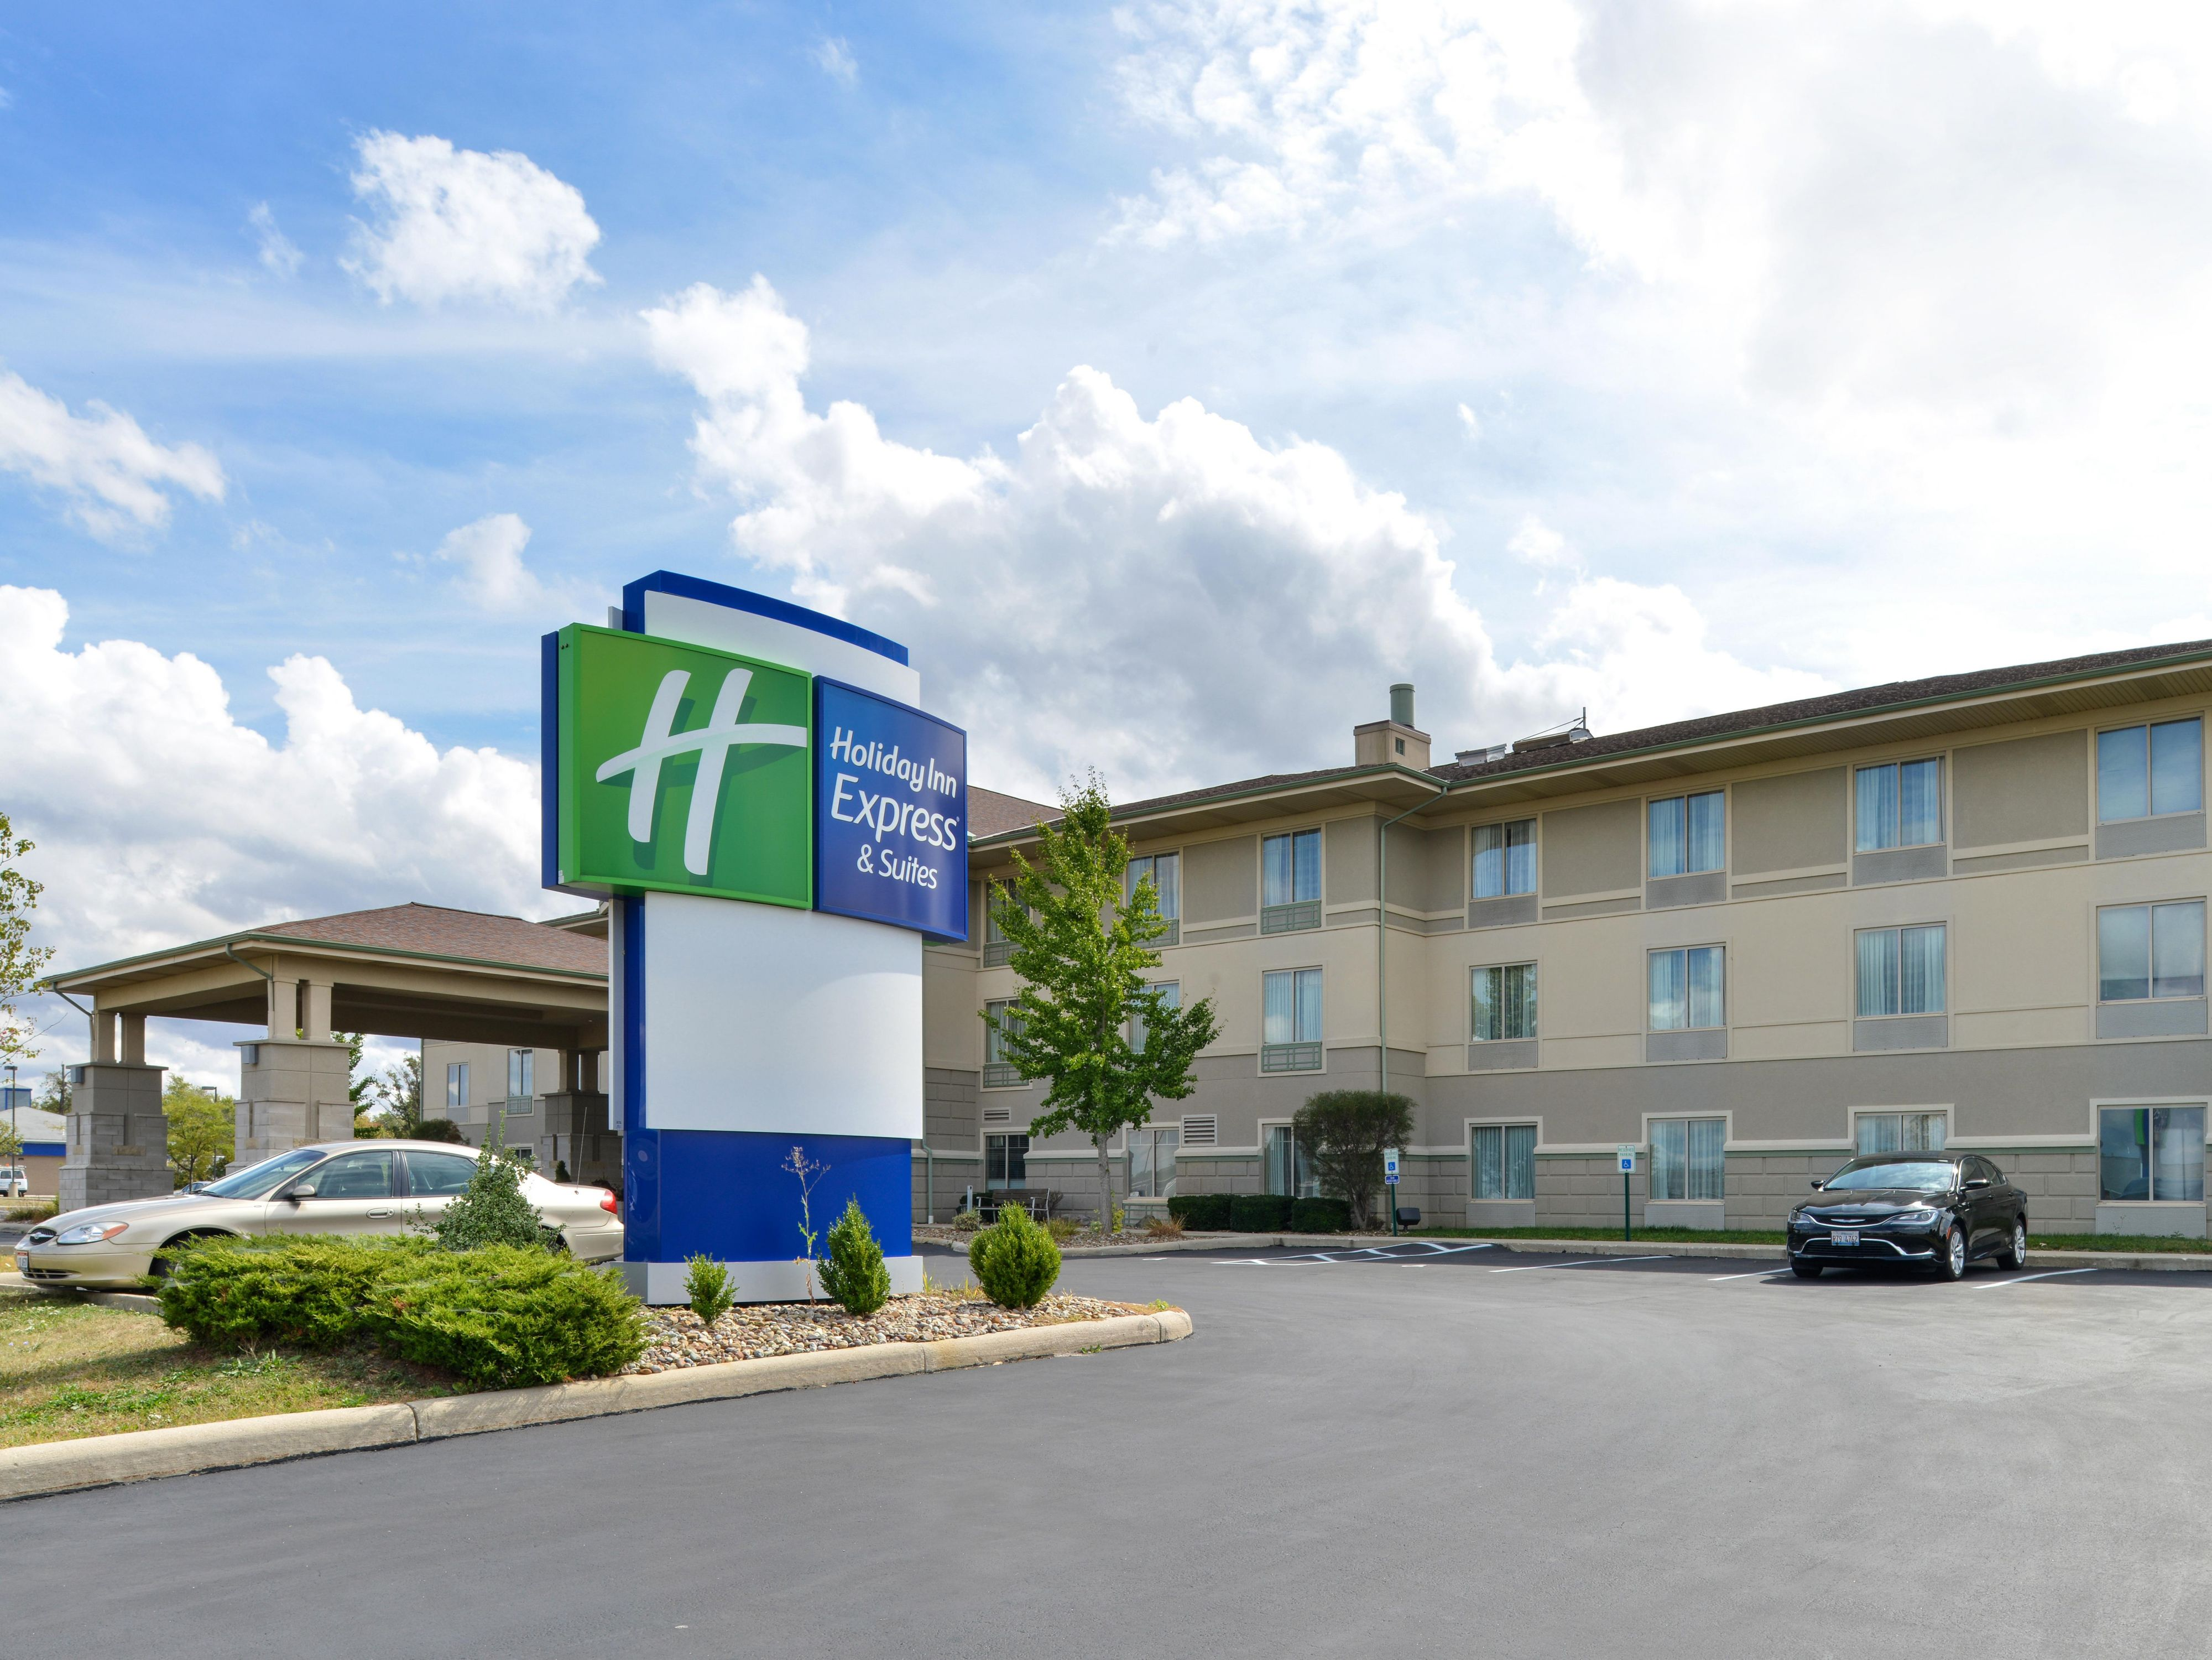 Holiday Inn Express Suites Greenville